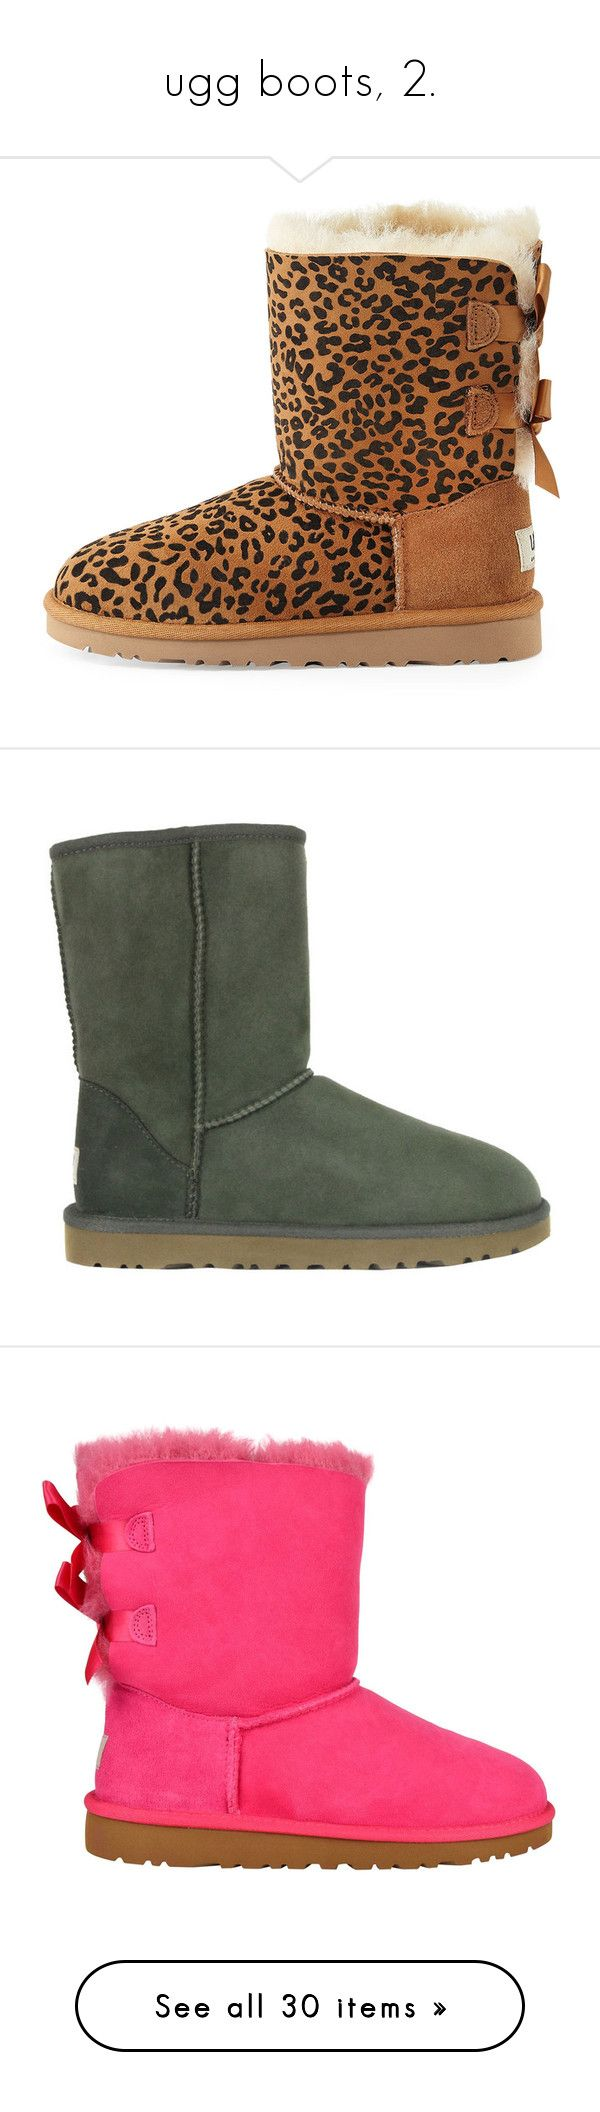 """""""ugg boots, 2."""" by theimanimo ❤ liked on Polyvore featuring shoes, boots, ankle booties, uggs, synthetic boots, ugg australia, sheepskin ankle boots, ankle boots, short ankle boots and footwear"""